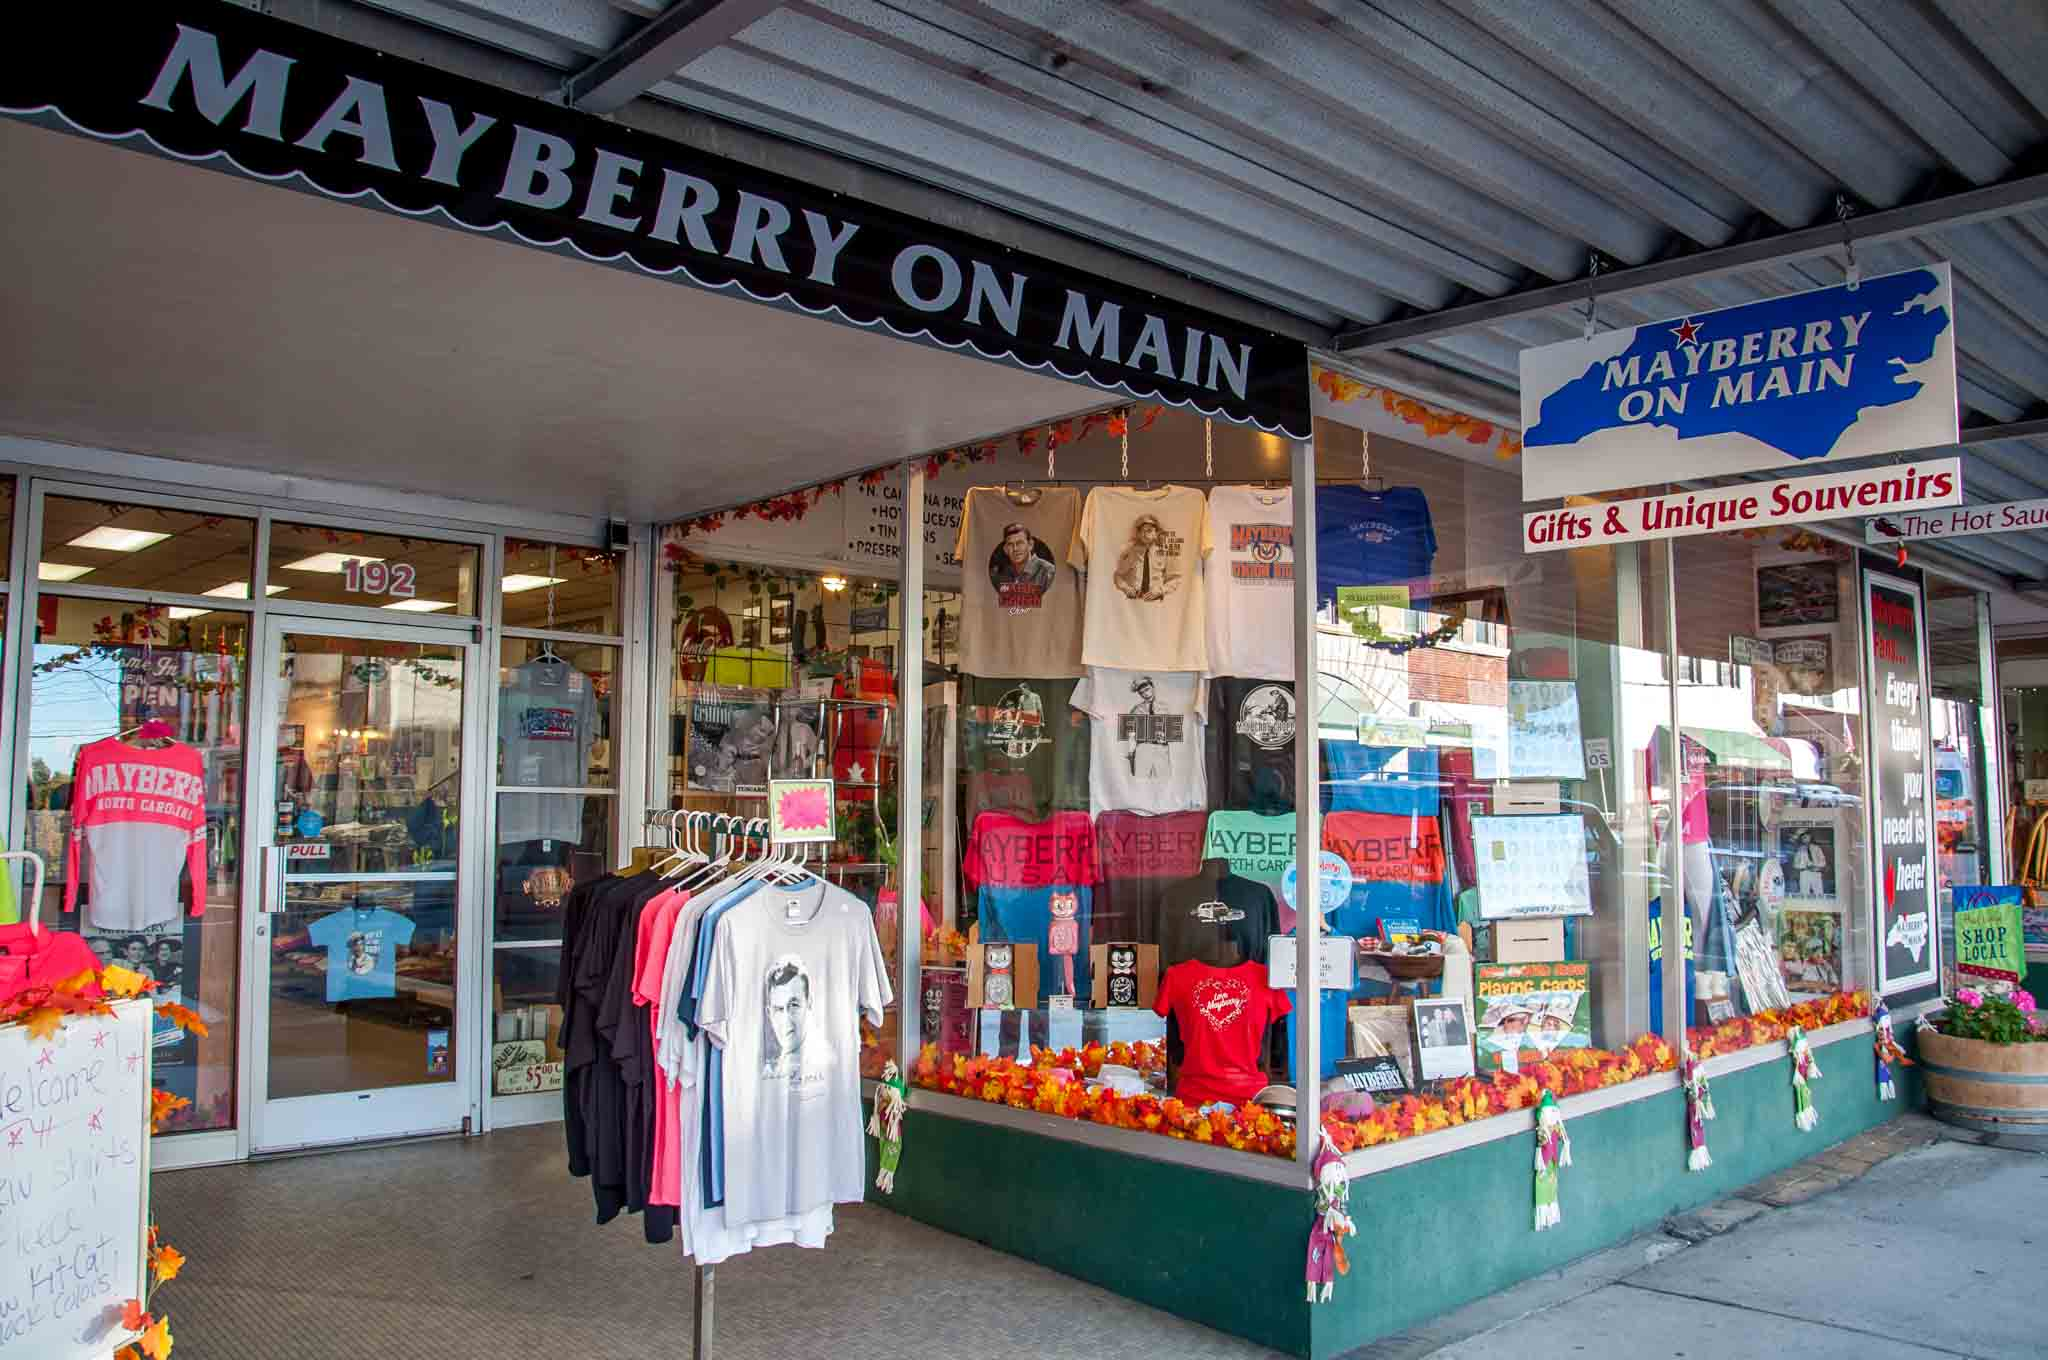 T-shirts in storefront of Mayberry on Main, a souvenir shop